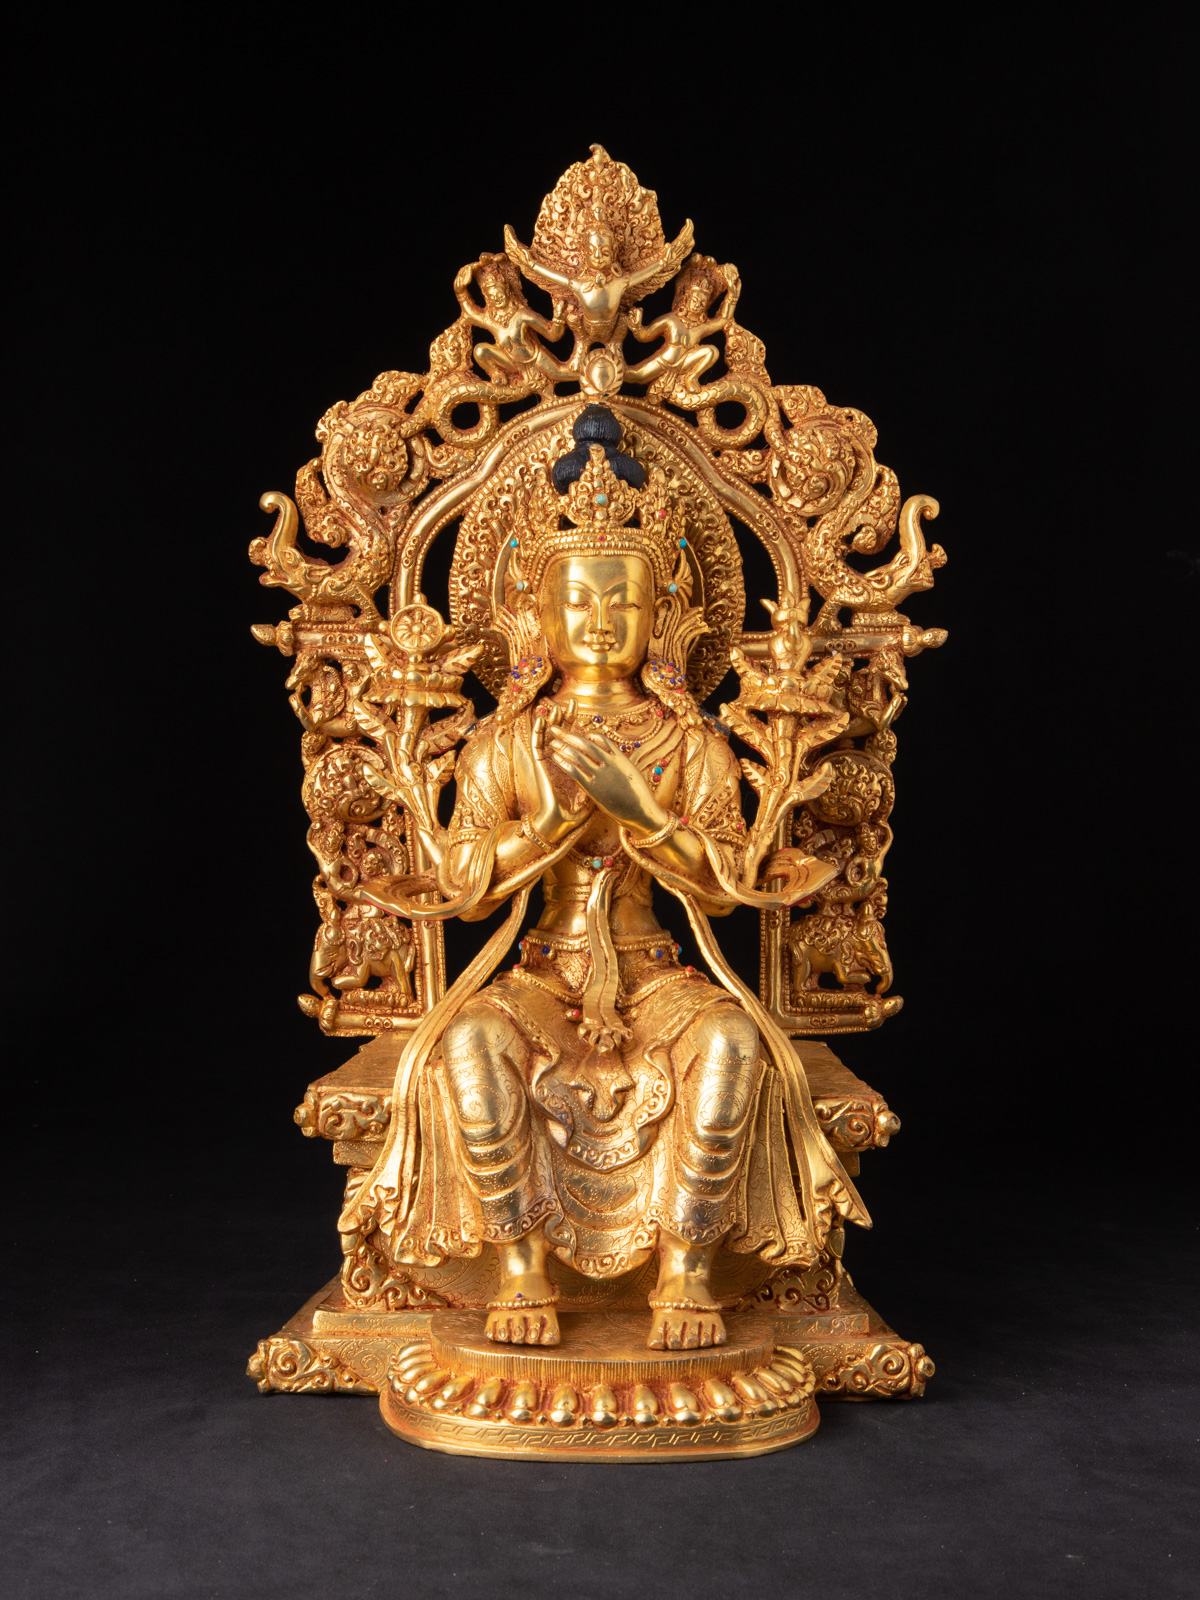 High quality Maitreya Buddha statue from Nepal made from Bronze